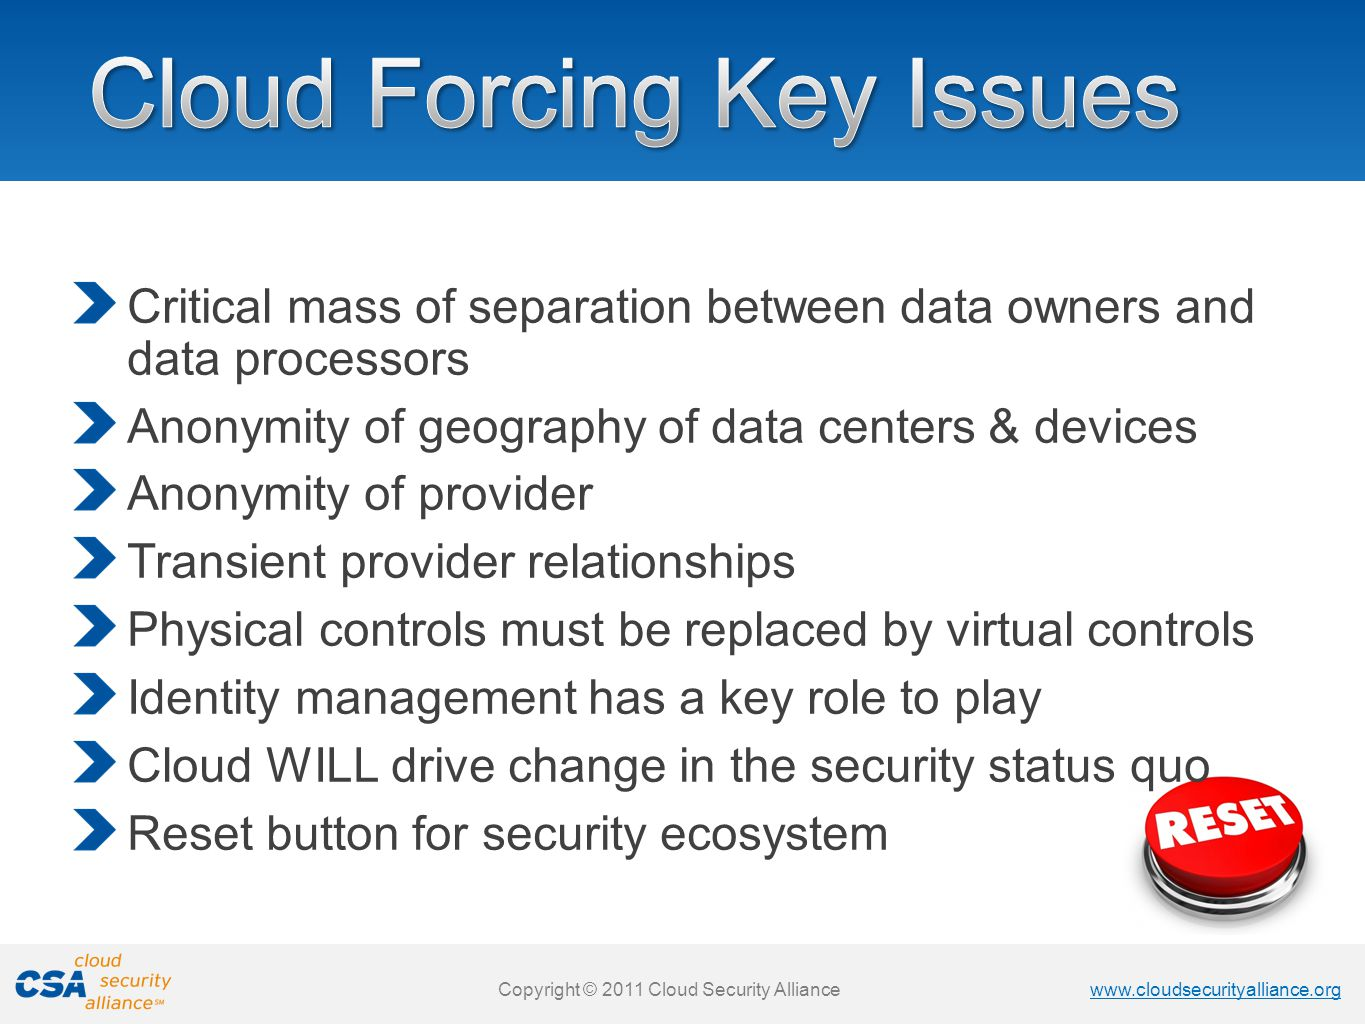 www.cloudsecurityalliance.org Copyright © 2011 Cloud Security Alliance www.cloudsecurityalliance.org Copyright © 2011 Cloud Security Alliance Critical mass of separation between data owners and data processors Anonymity of geography of data centers & devices Anonymity of provider Transient provider relationships Physical controls must be replaced by virtual controls Identity management has a key role to play Cloud WILL drive change in the security status quo Reset button for security ecosystem